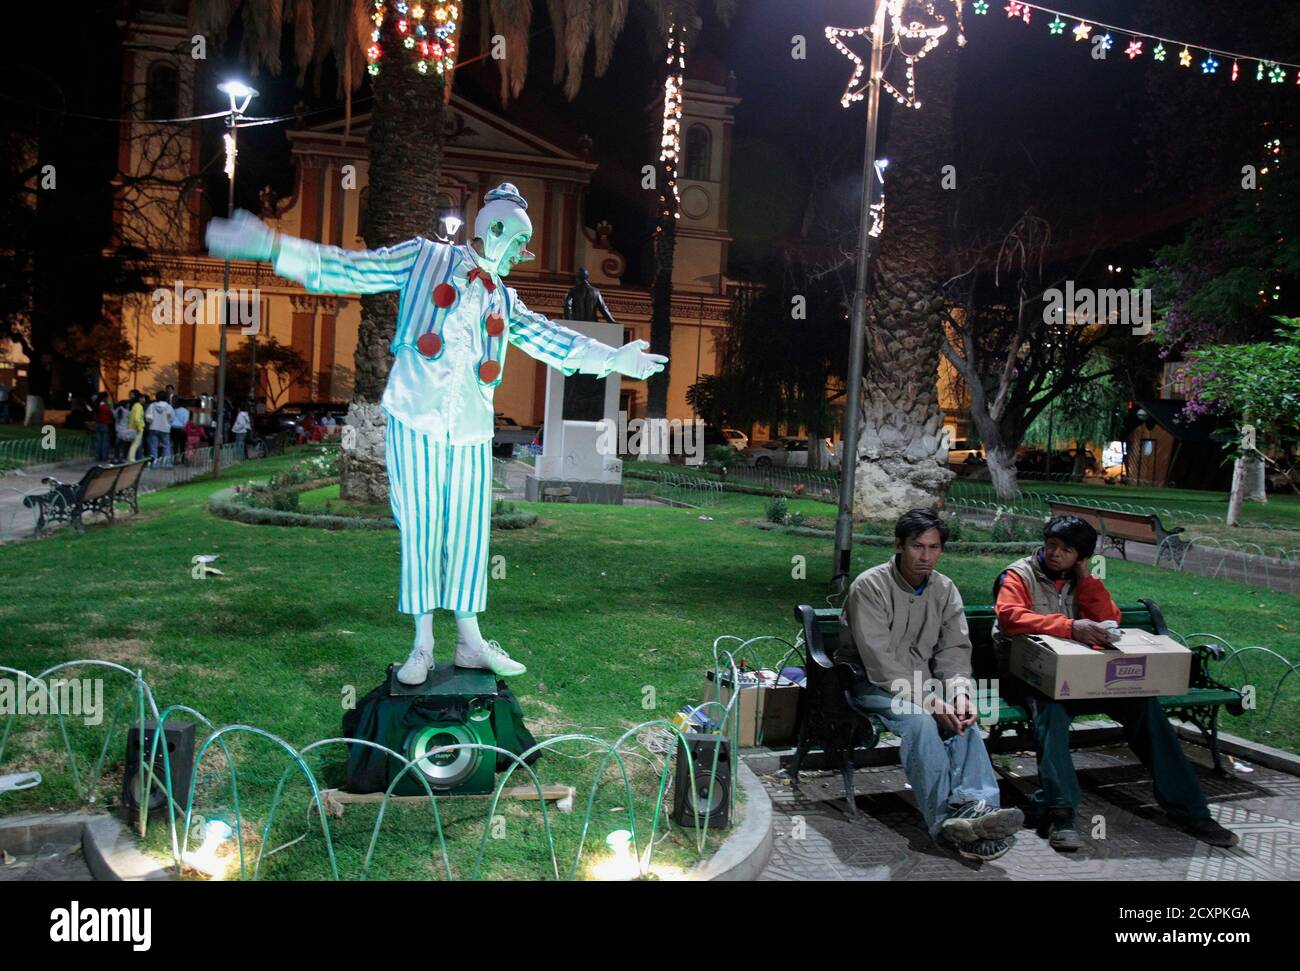 Men sit on a bench as a sidewalk mime artist performs at Colon Square in Cochabamba December 12, 2011. REUTERS/David Mercado (BOLIVIA - Tags: SOCIETY) Stock Photo